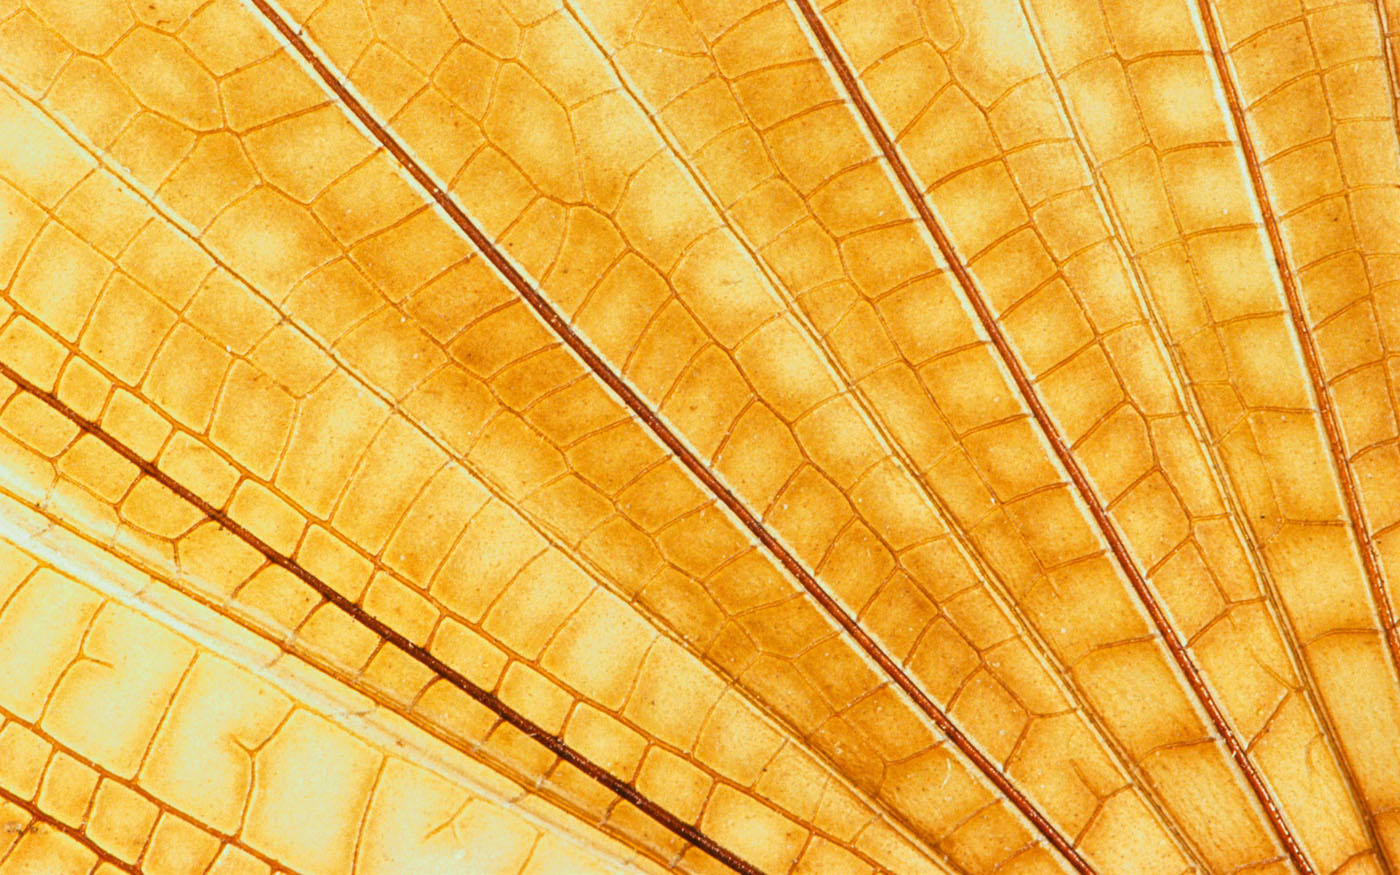 Feather wings close-up 29505